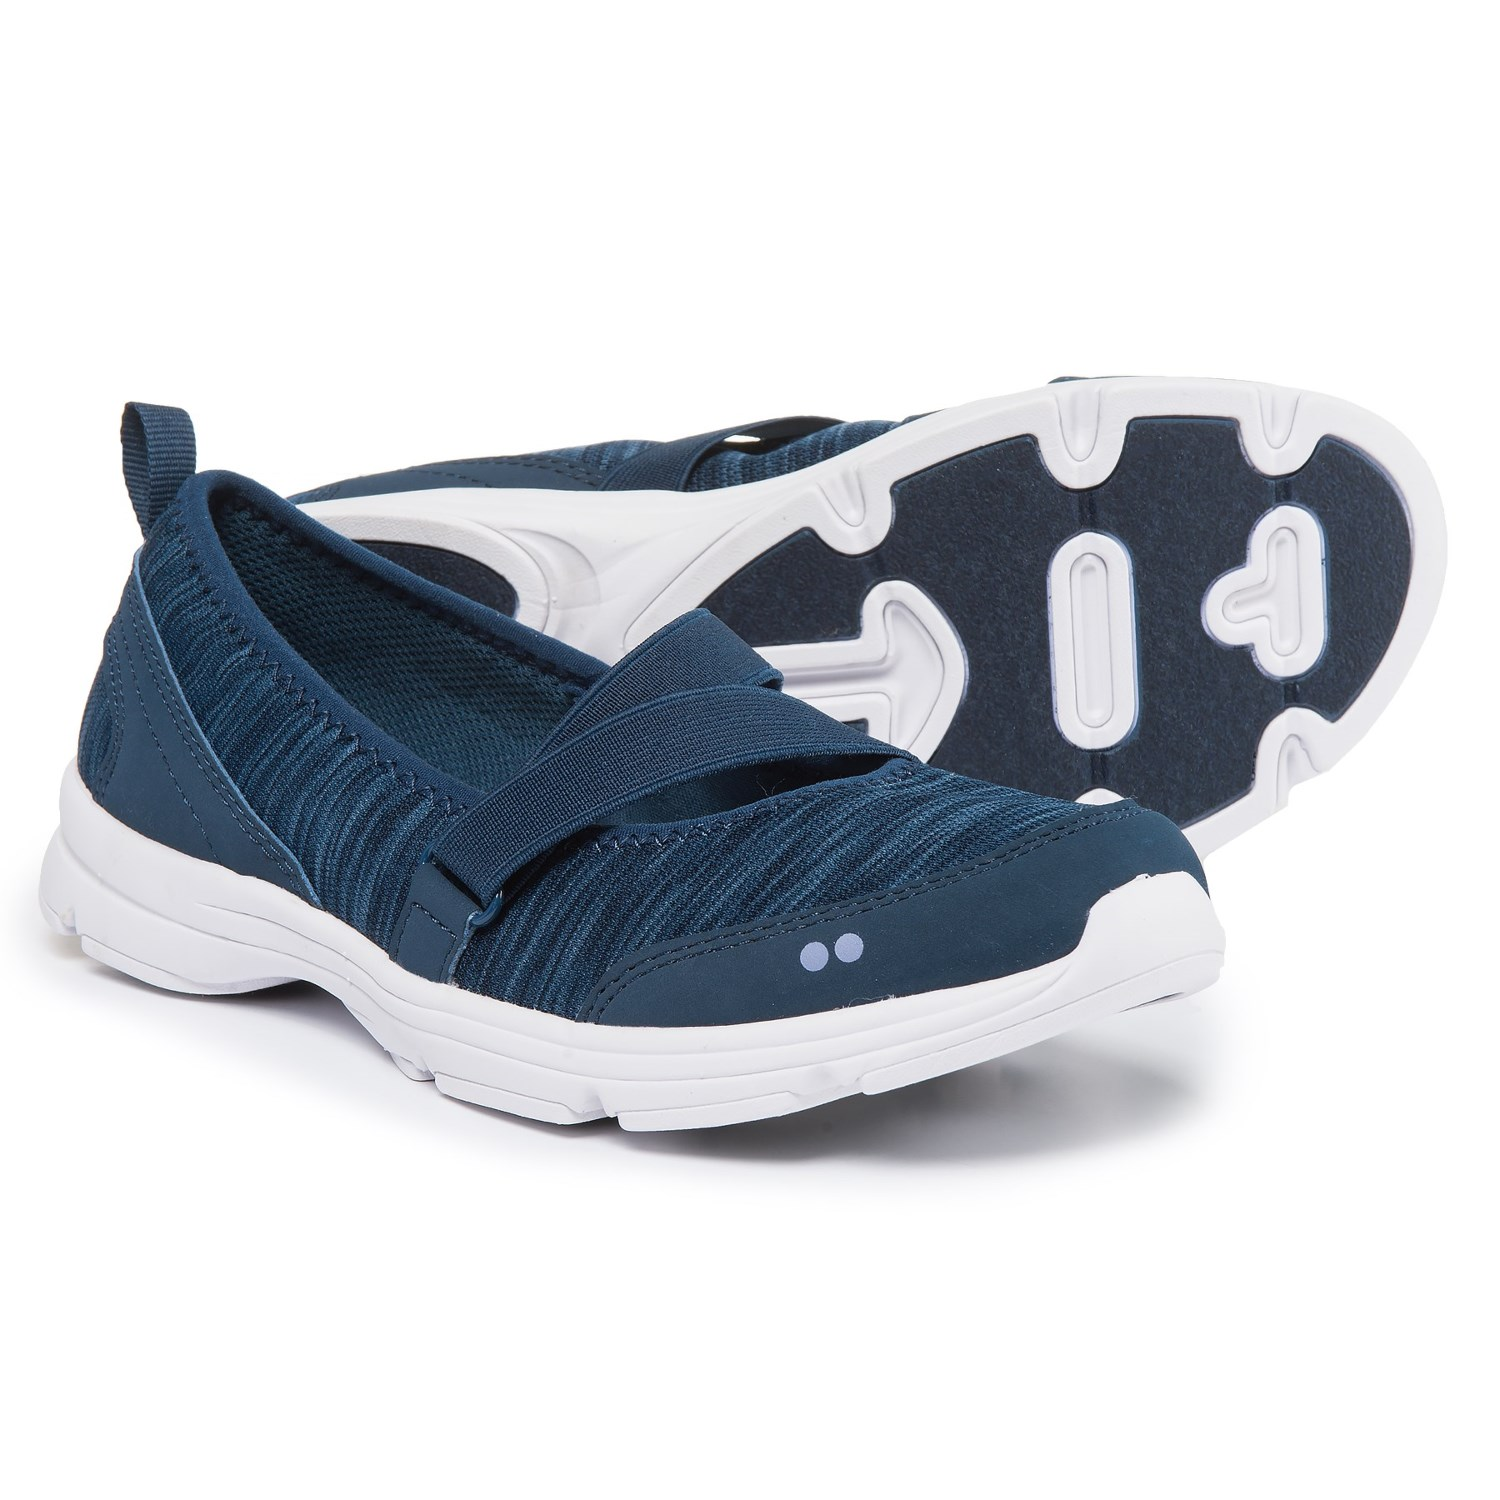 Ryka Slip On Shoes Review